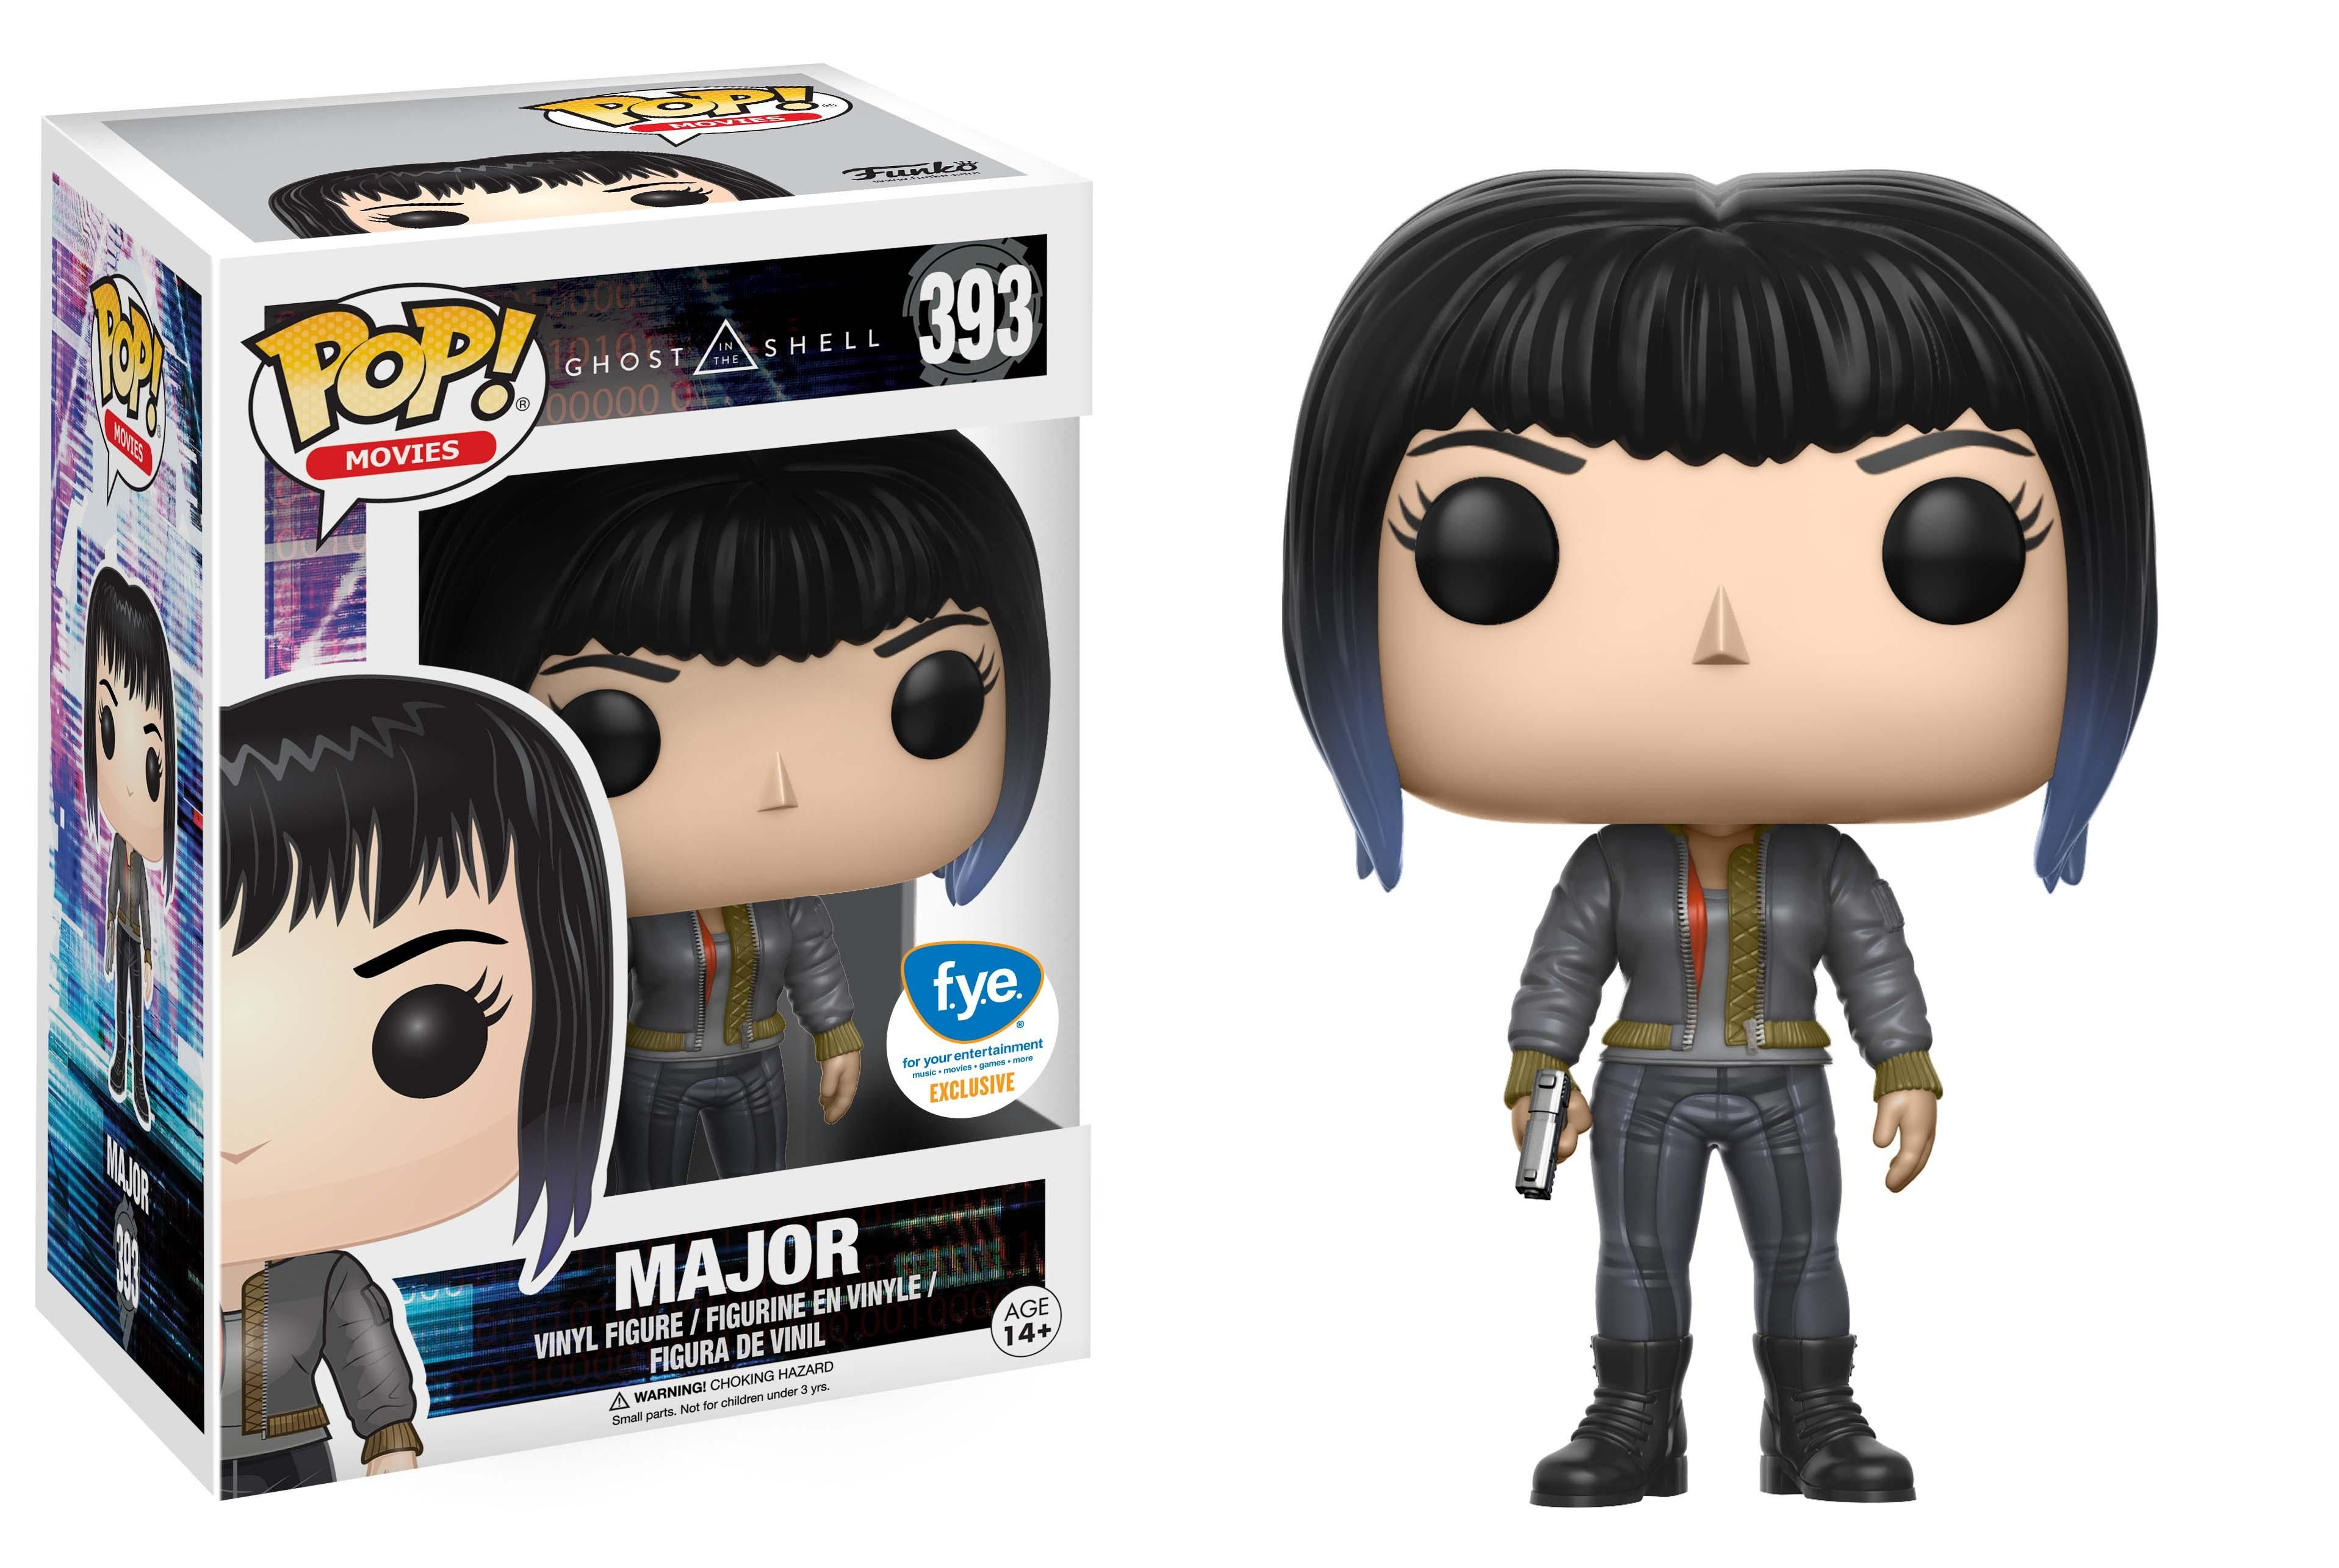 f y e ghost in the shell exclusive ghost in the shell major